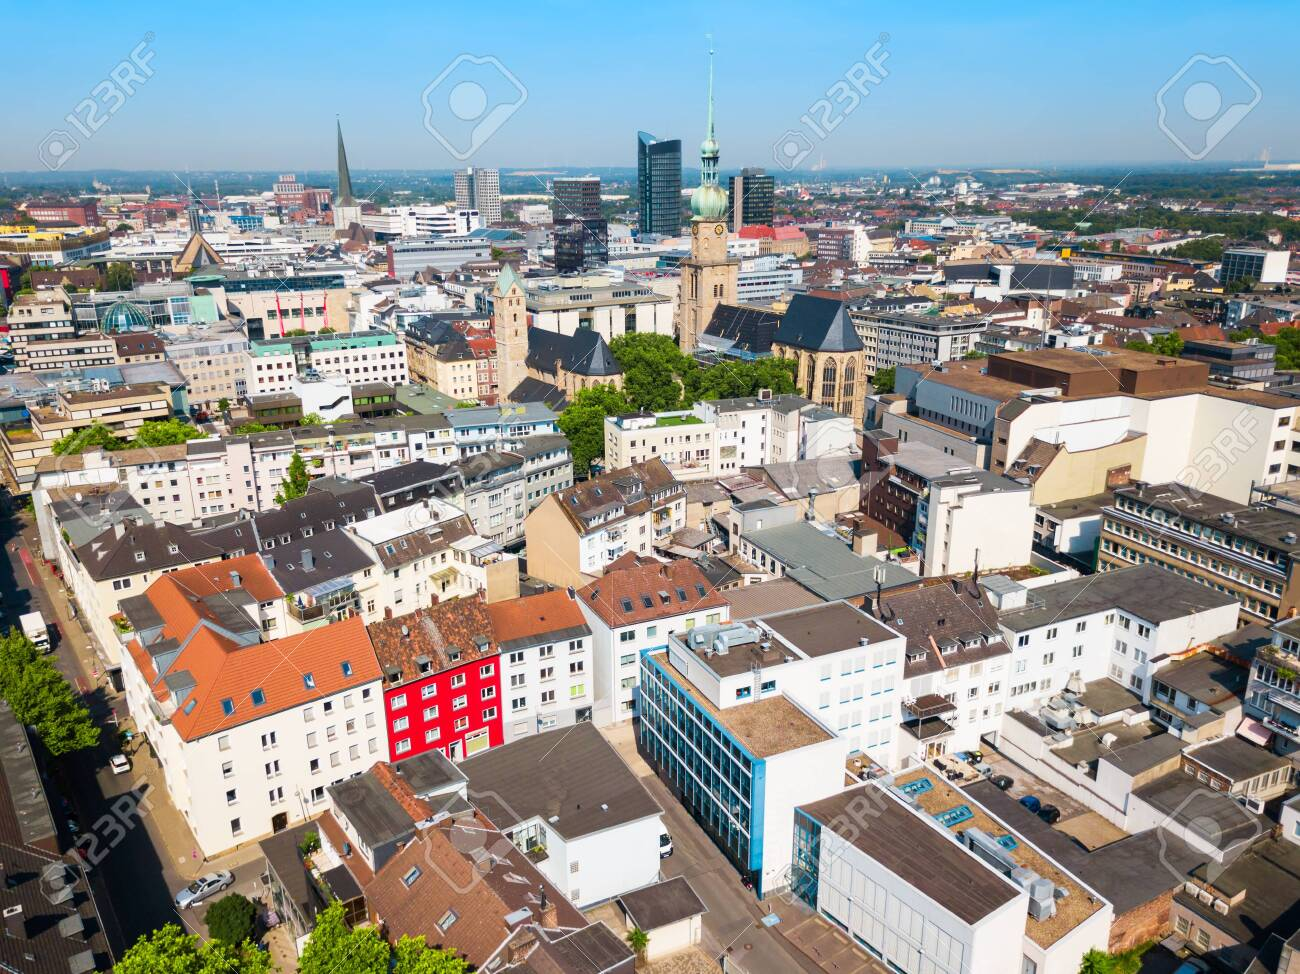 Dortmund City Centre Aerial Panoramic View In Germany Stock Photo, Picture  And Royalty Free Image. Image 120074117.